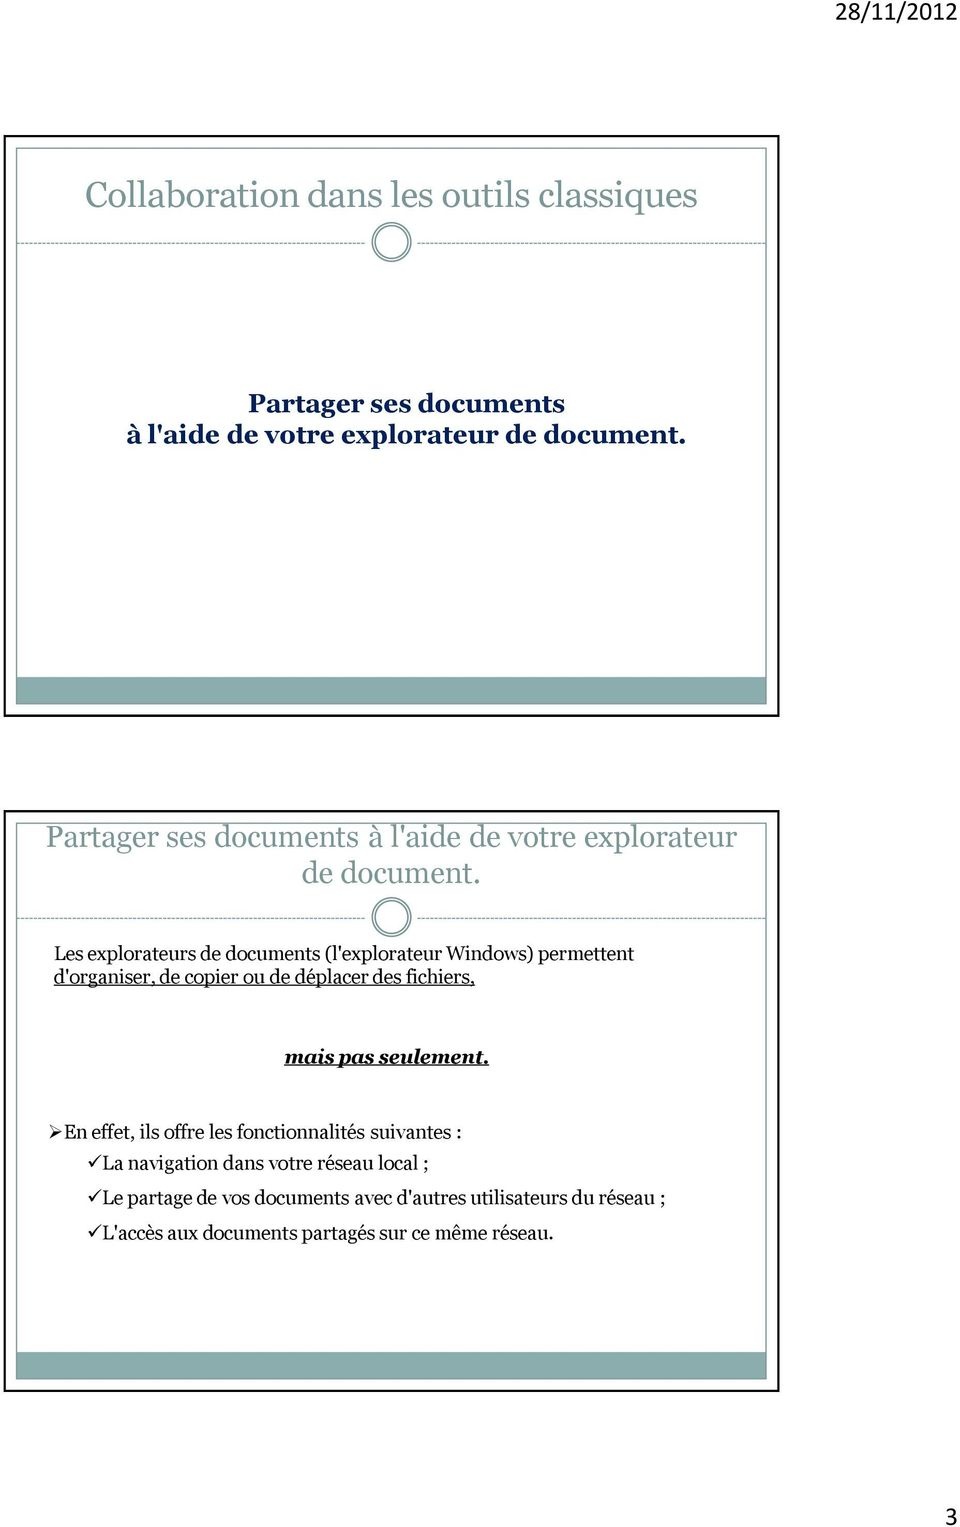 Les explorateurs de documents (l'explorateur Windows) permettent d'organiser, de copier ou de déplacer des fichiers, mais pas